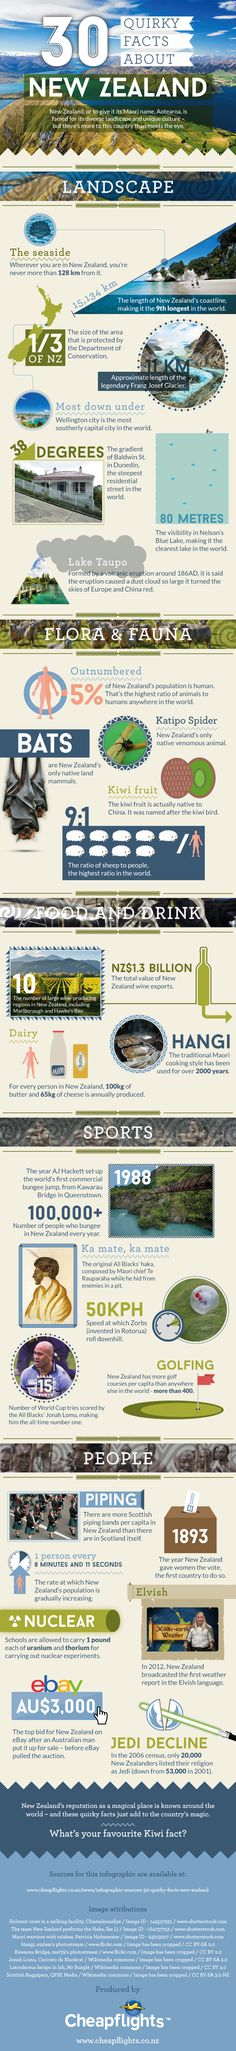 30 Interesting Facts About New Zealand - Travel Infographic. Topic: Kiwis, New Zealander, Maori culture, statistics, geography.